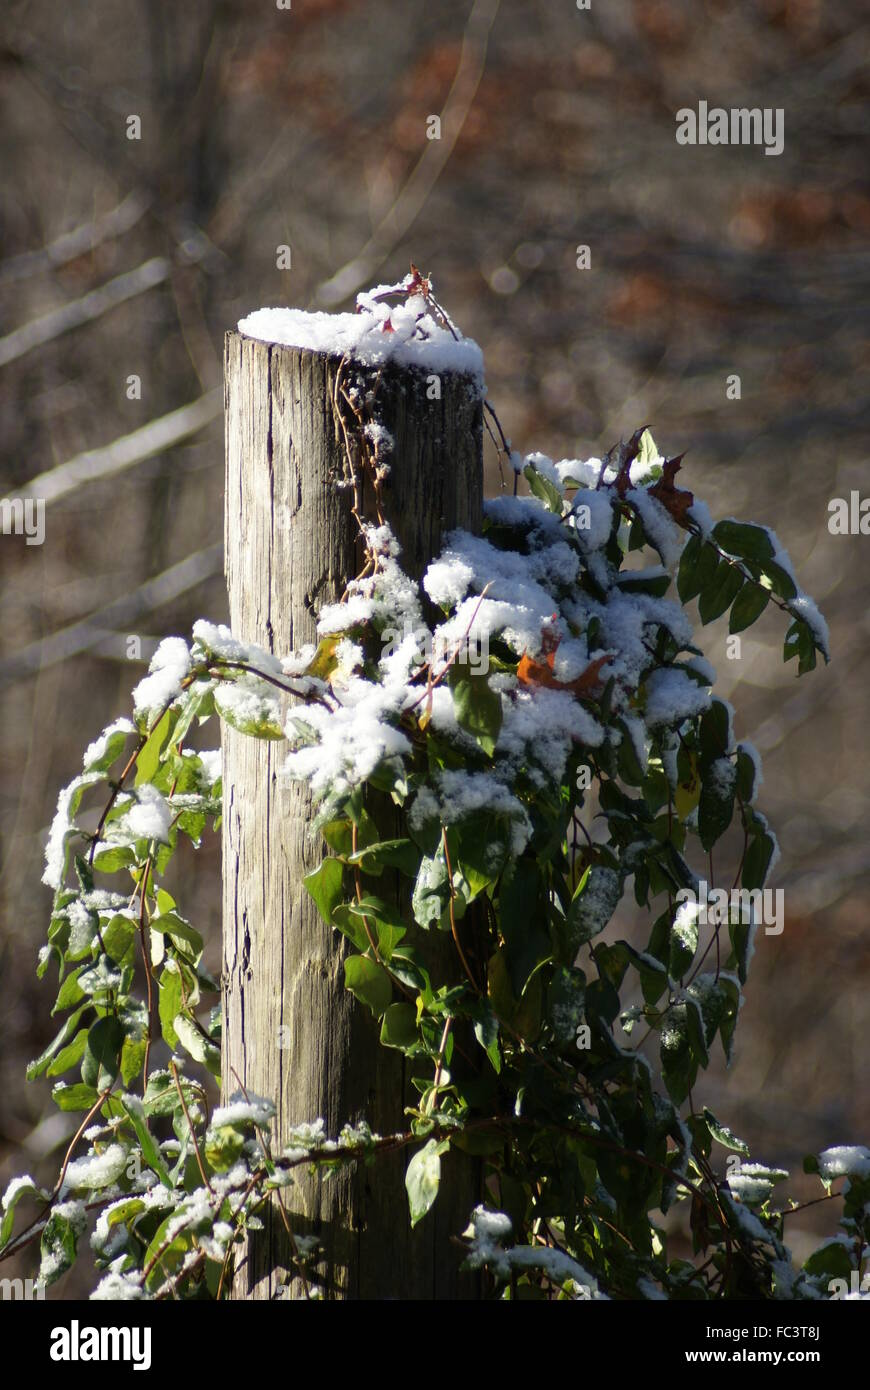 A fence post with vines growing on it after a snow fall. - Stock Image